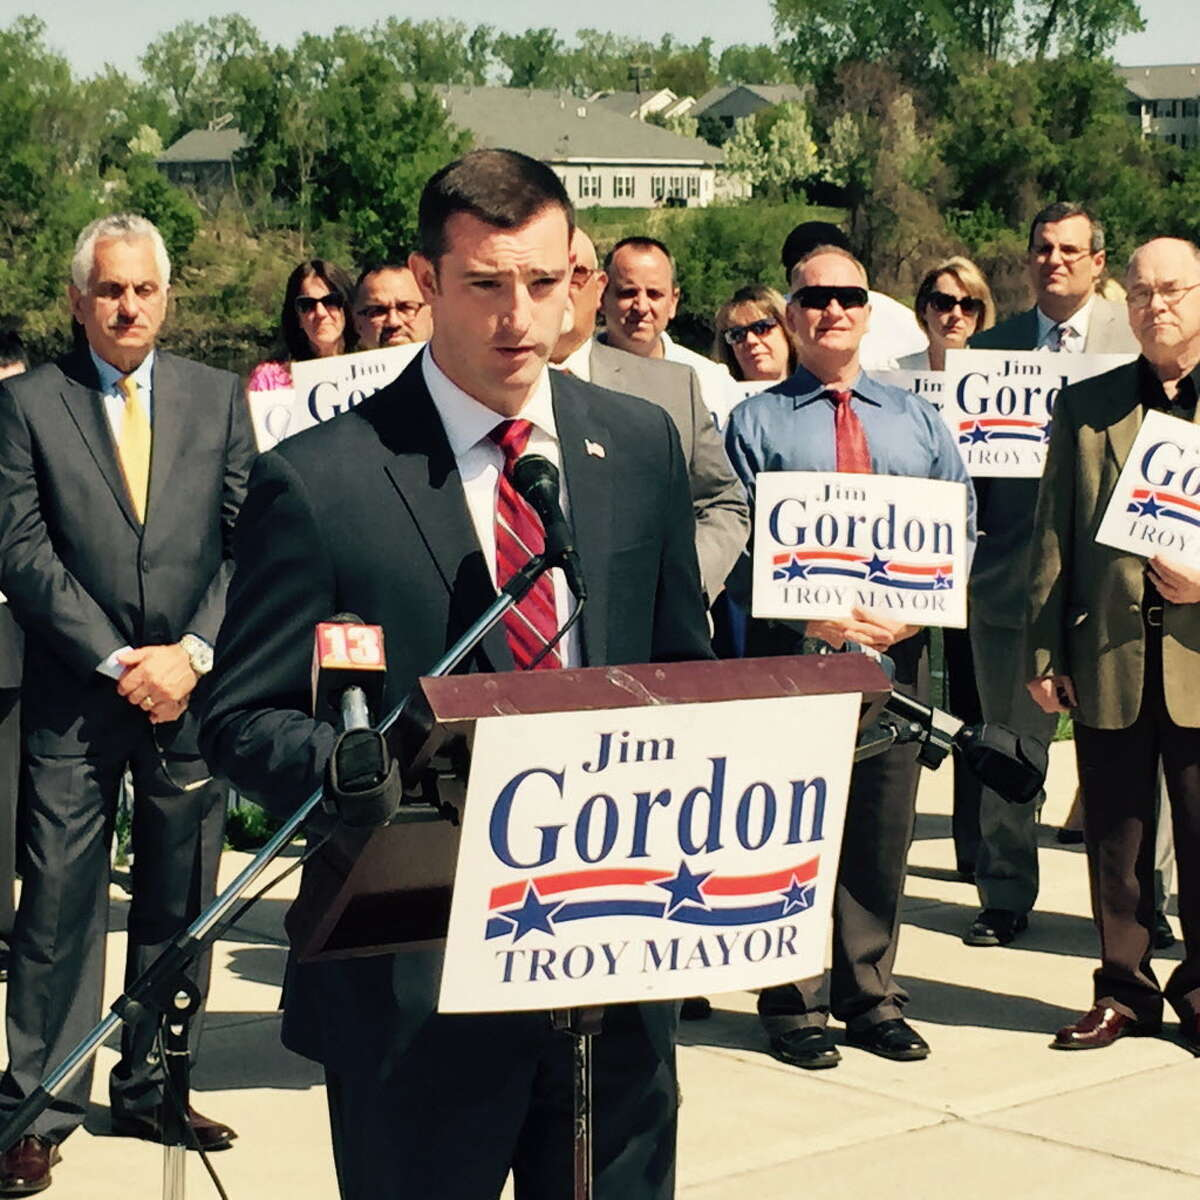 Wife of Troy mayoral candidate Jim Gordon said he 'held me down.'Read the full story here. Troy City Councilman Jim Gordon announces on May 7, 2015, that he is a Republican candidate for Troy mayor. (Kenneth C. Crowe II/Times Union)